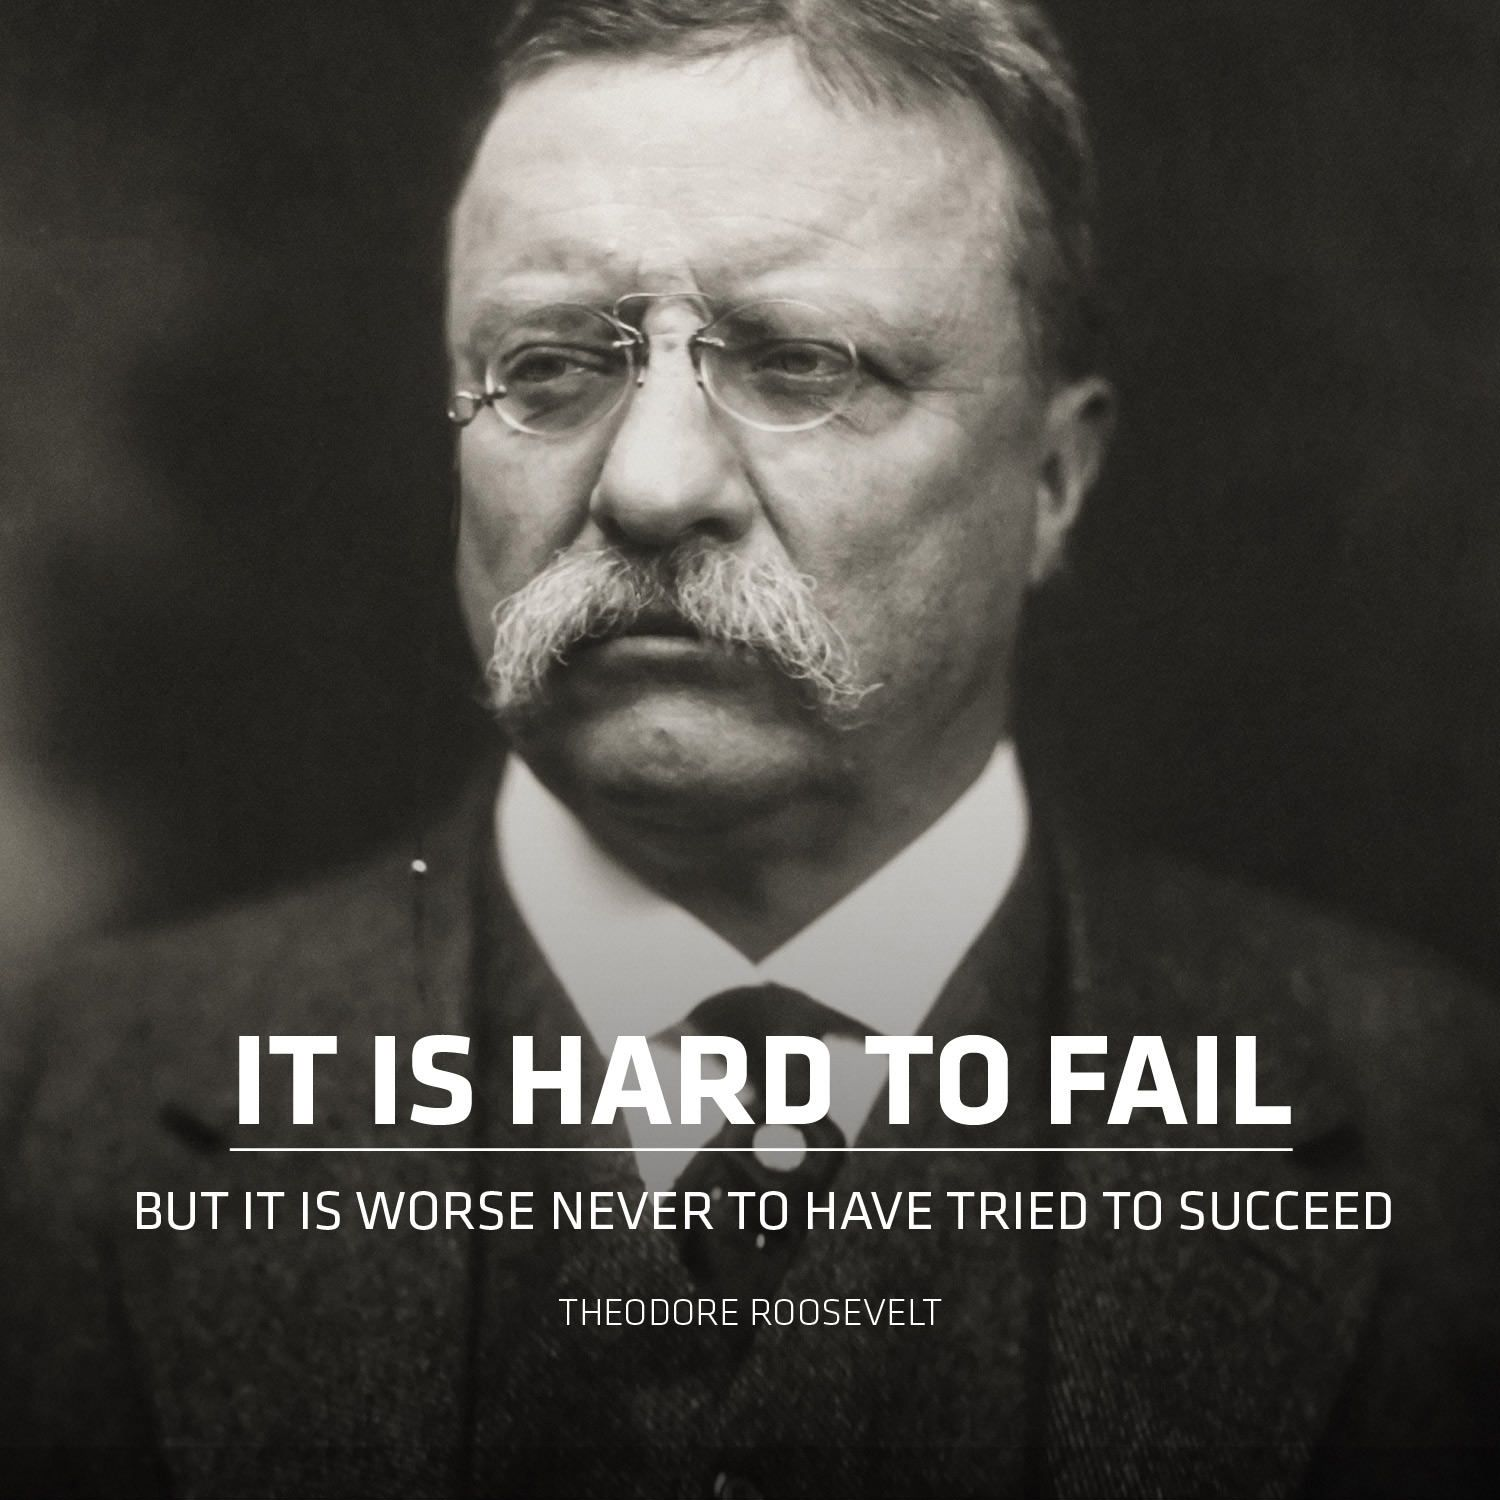 20 Inspiring Quotes That Will Change Your Life Roosevelt